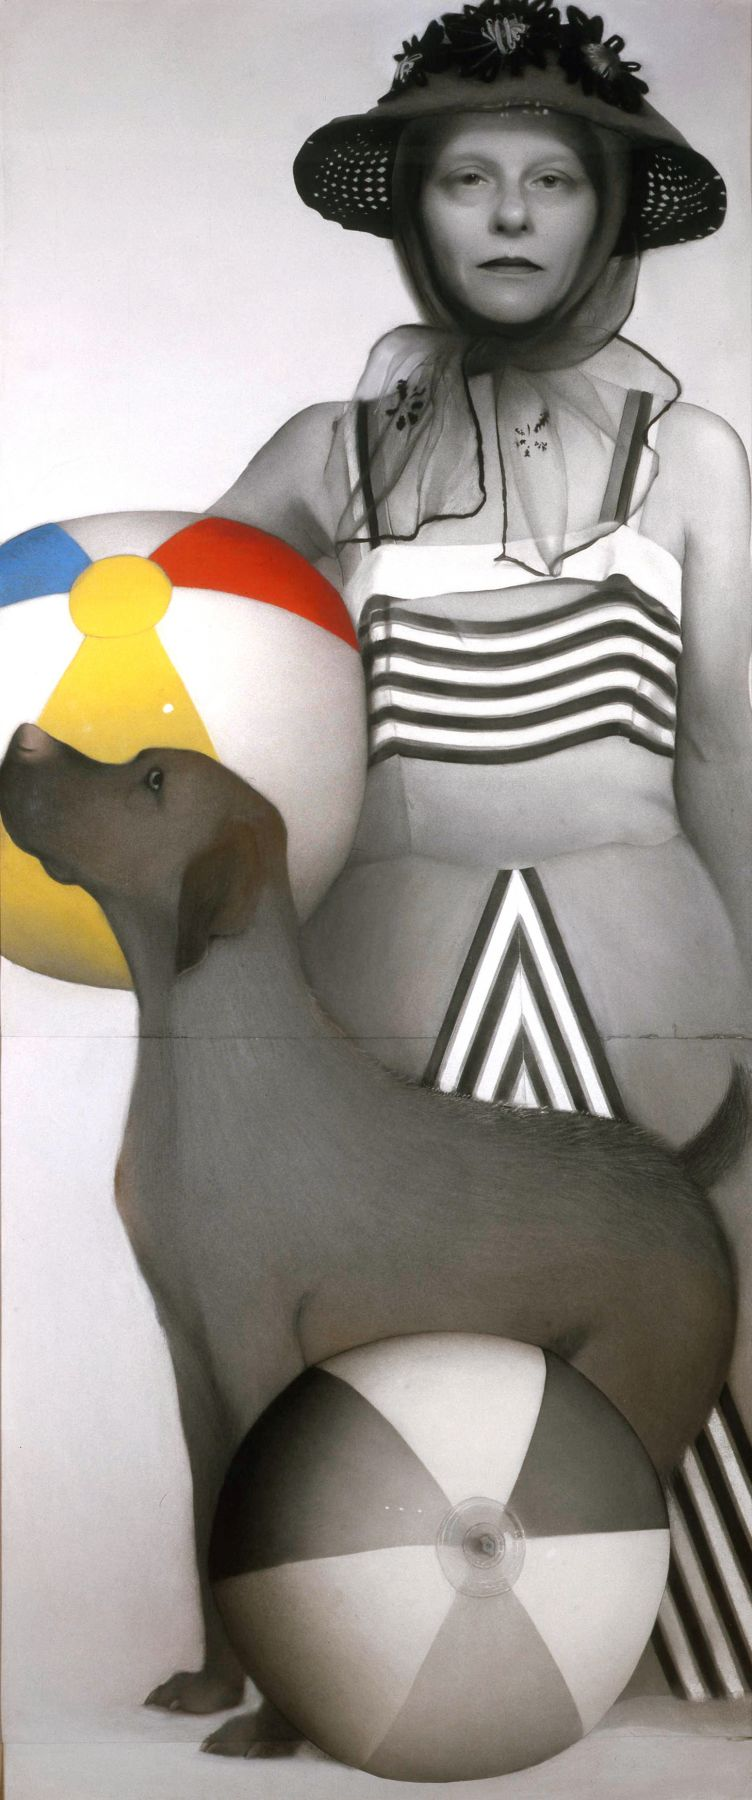 Susan Hauptman, Hair Self-Portrait with Dog (SOLD), 2001, charcoal, pastel, and hair on paper, 94 x 40 1/2 inches